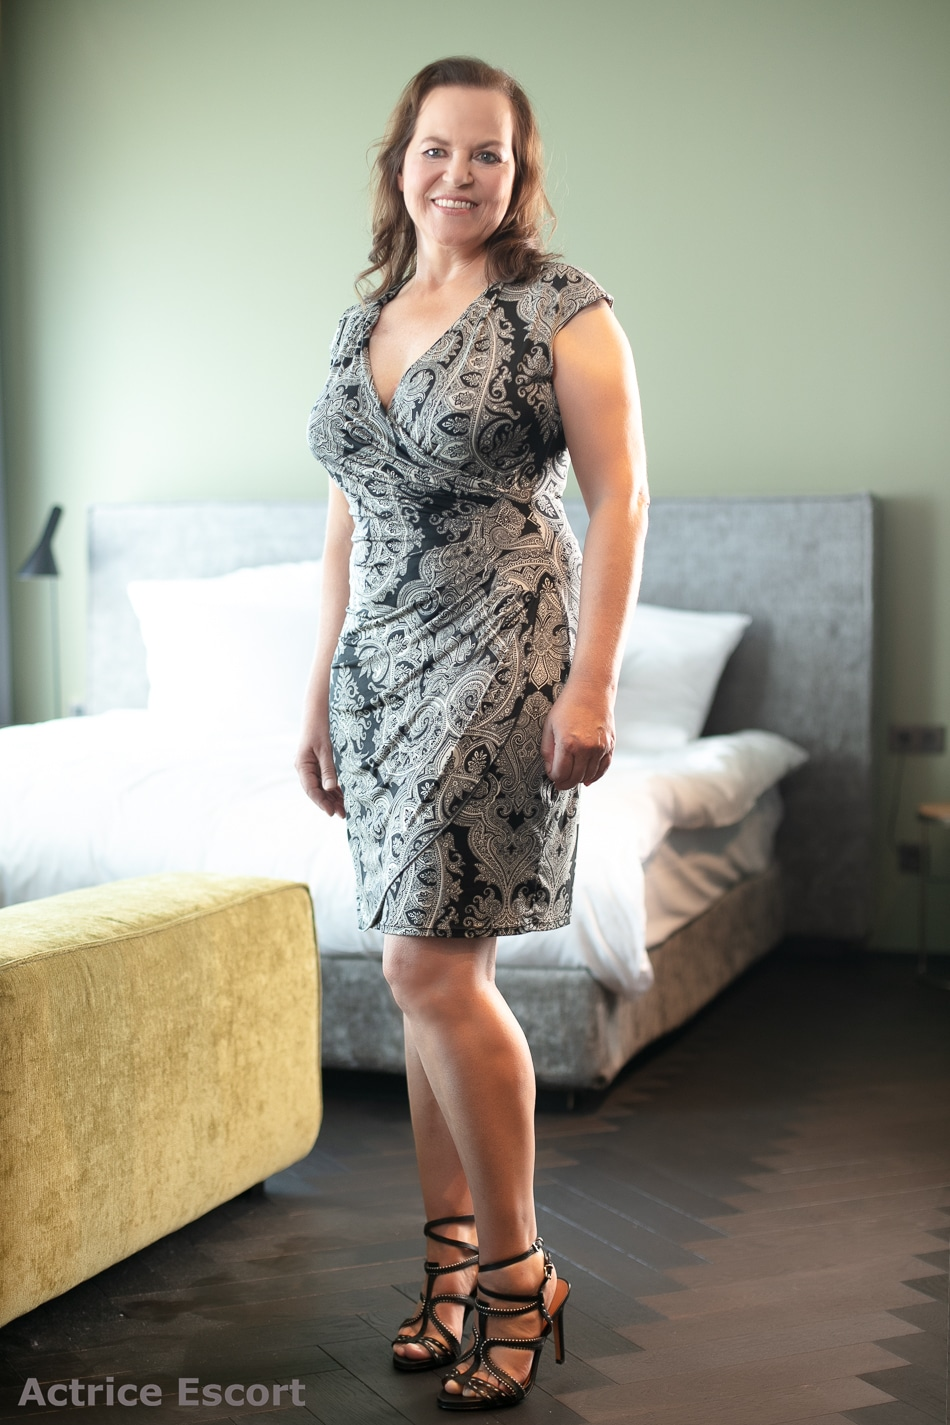 Bettina reife Frau Escortservice Duesseldorf(8)